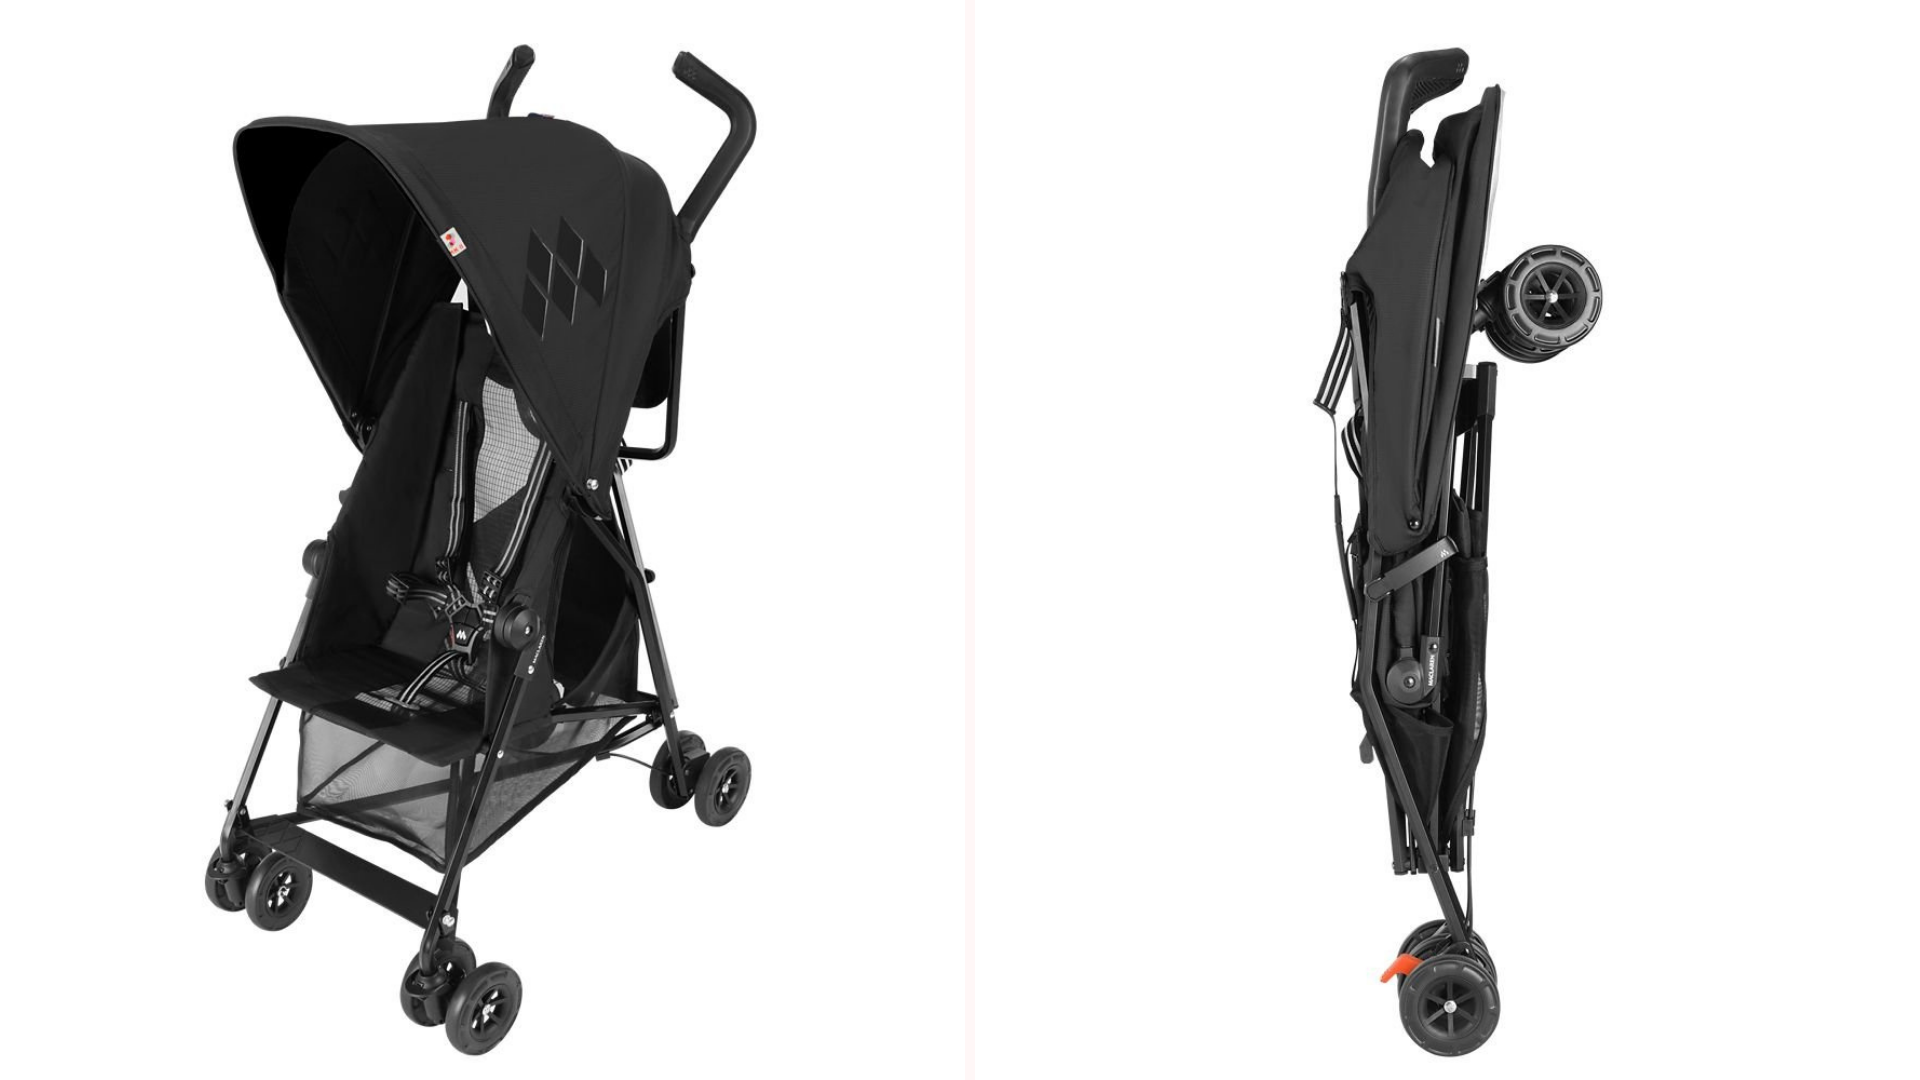 The Maclaren umbrella stroller in the open and folded positions showing how slim it is.